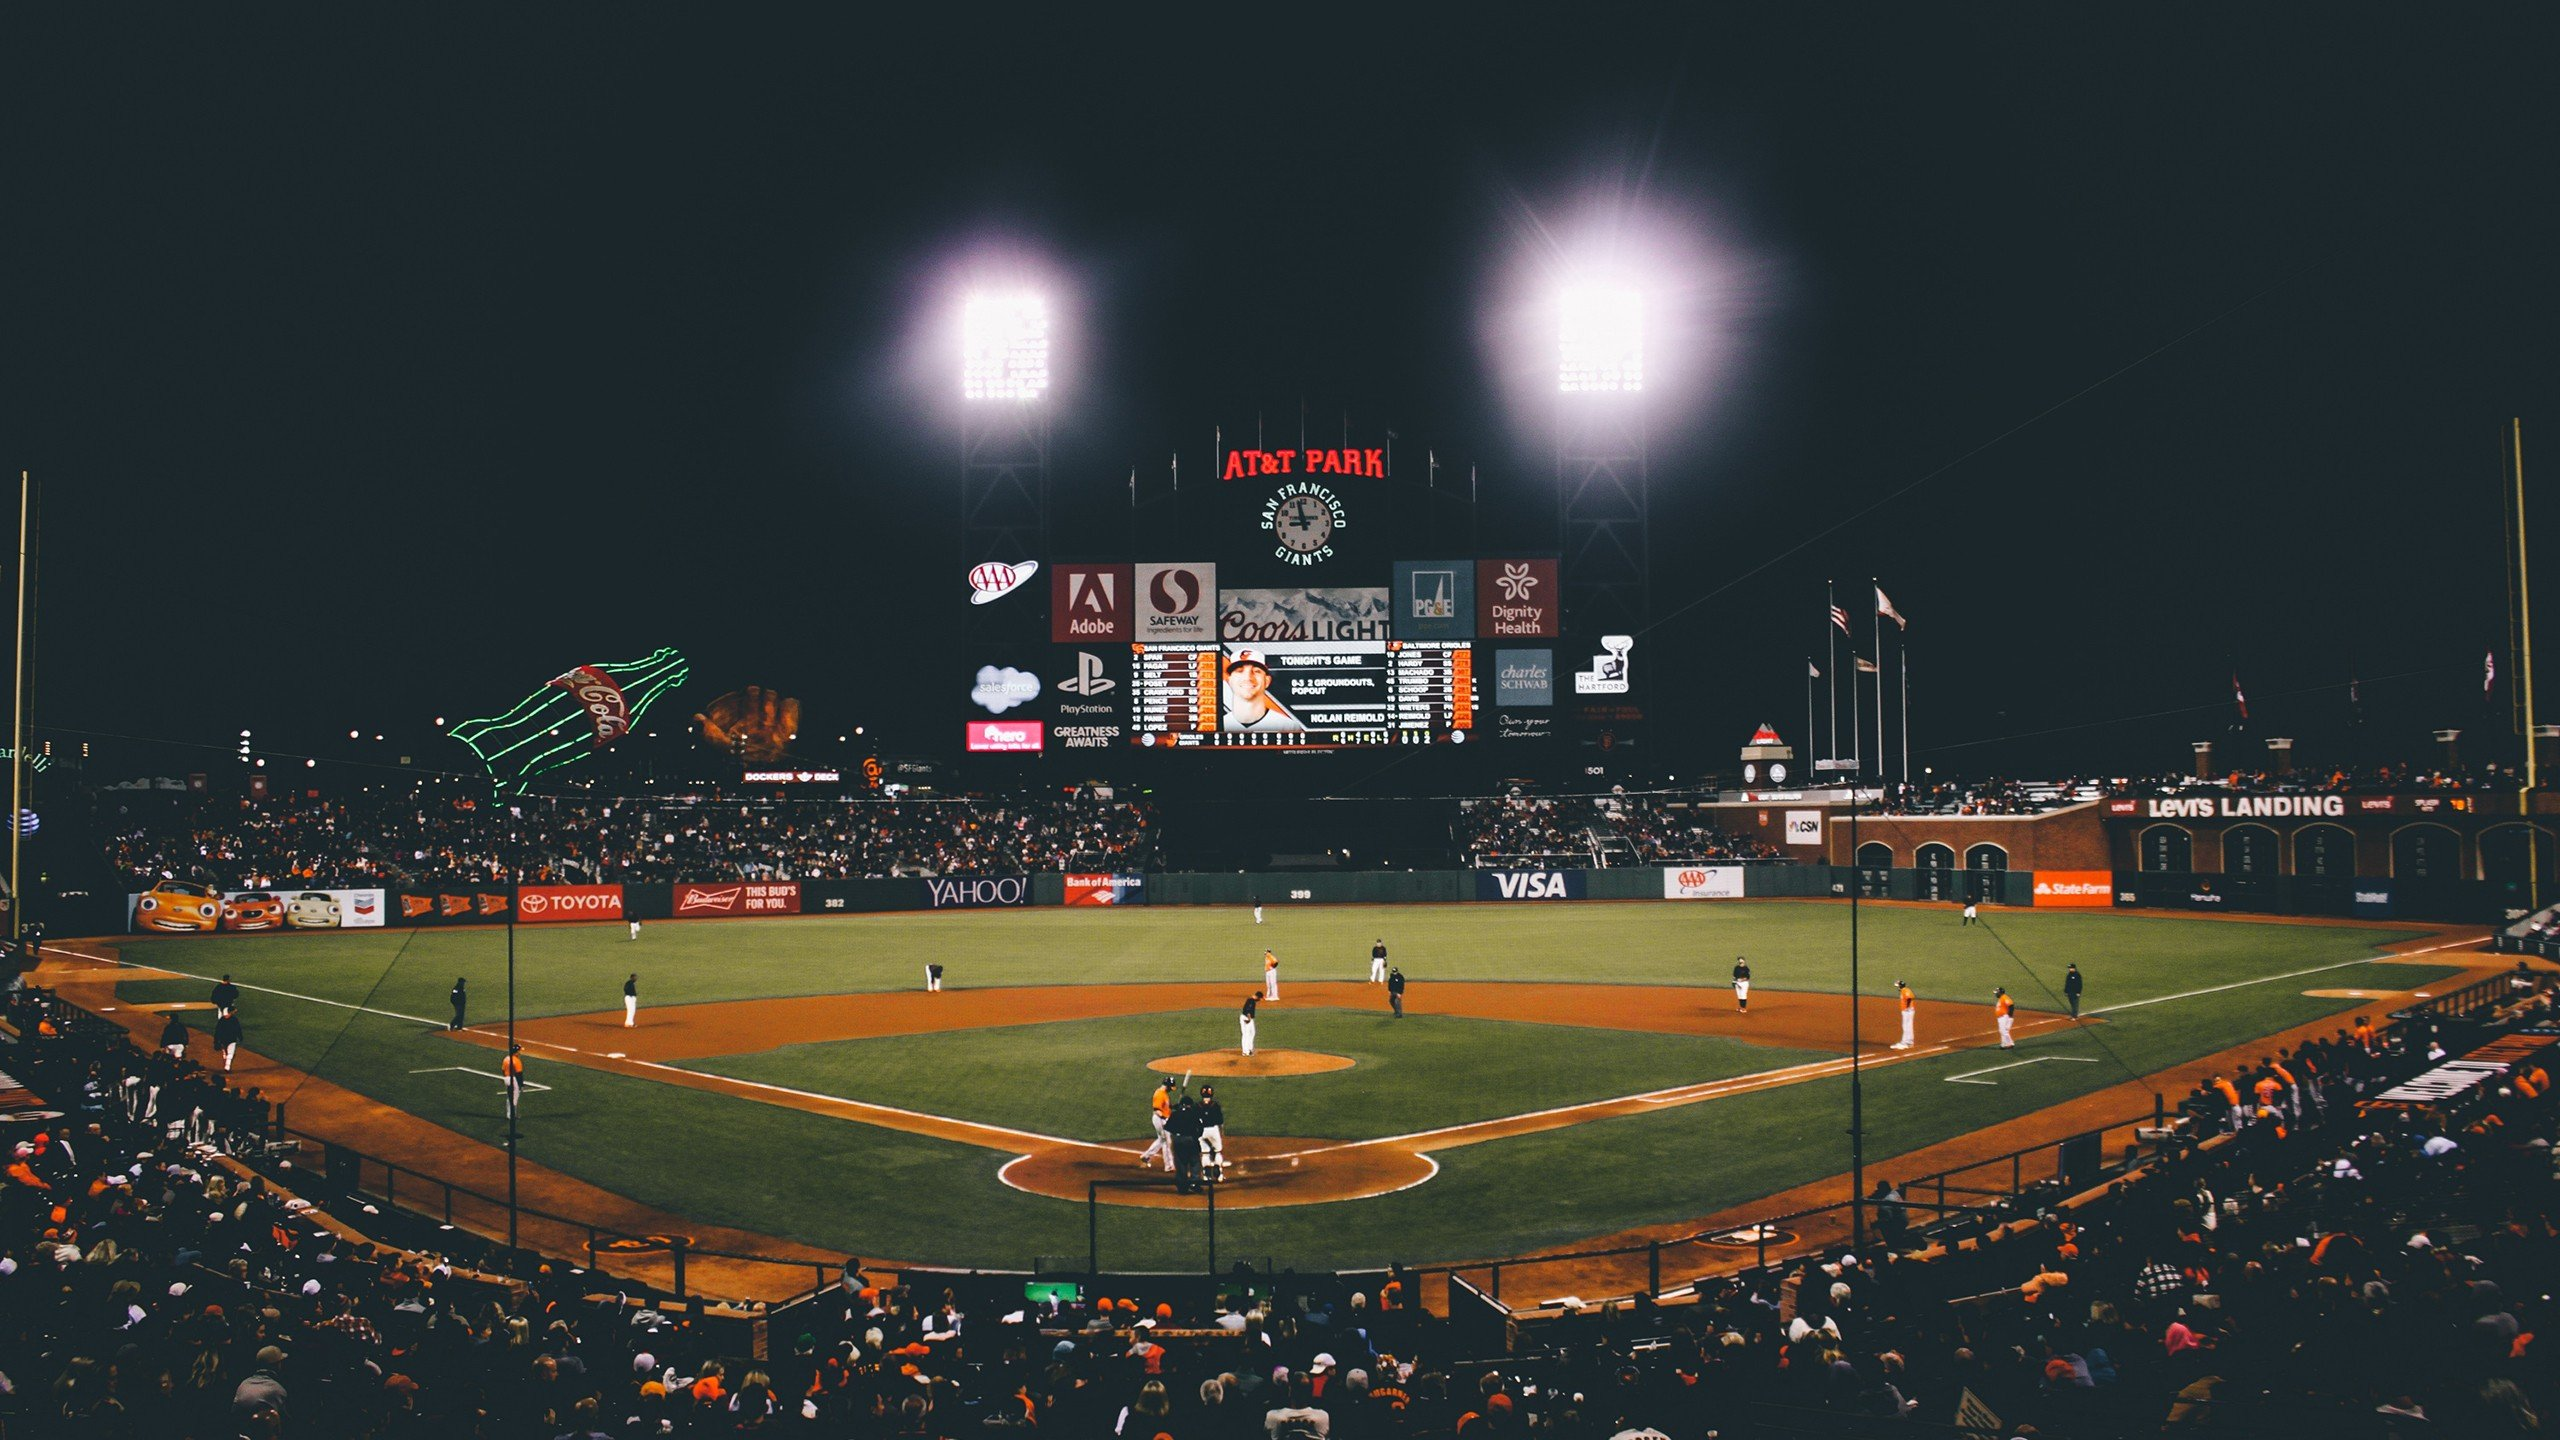 Baseball, San Francisco, San Francisco Giants, ATT Park HD